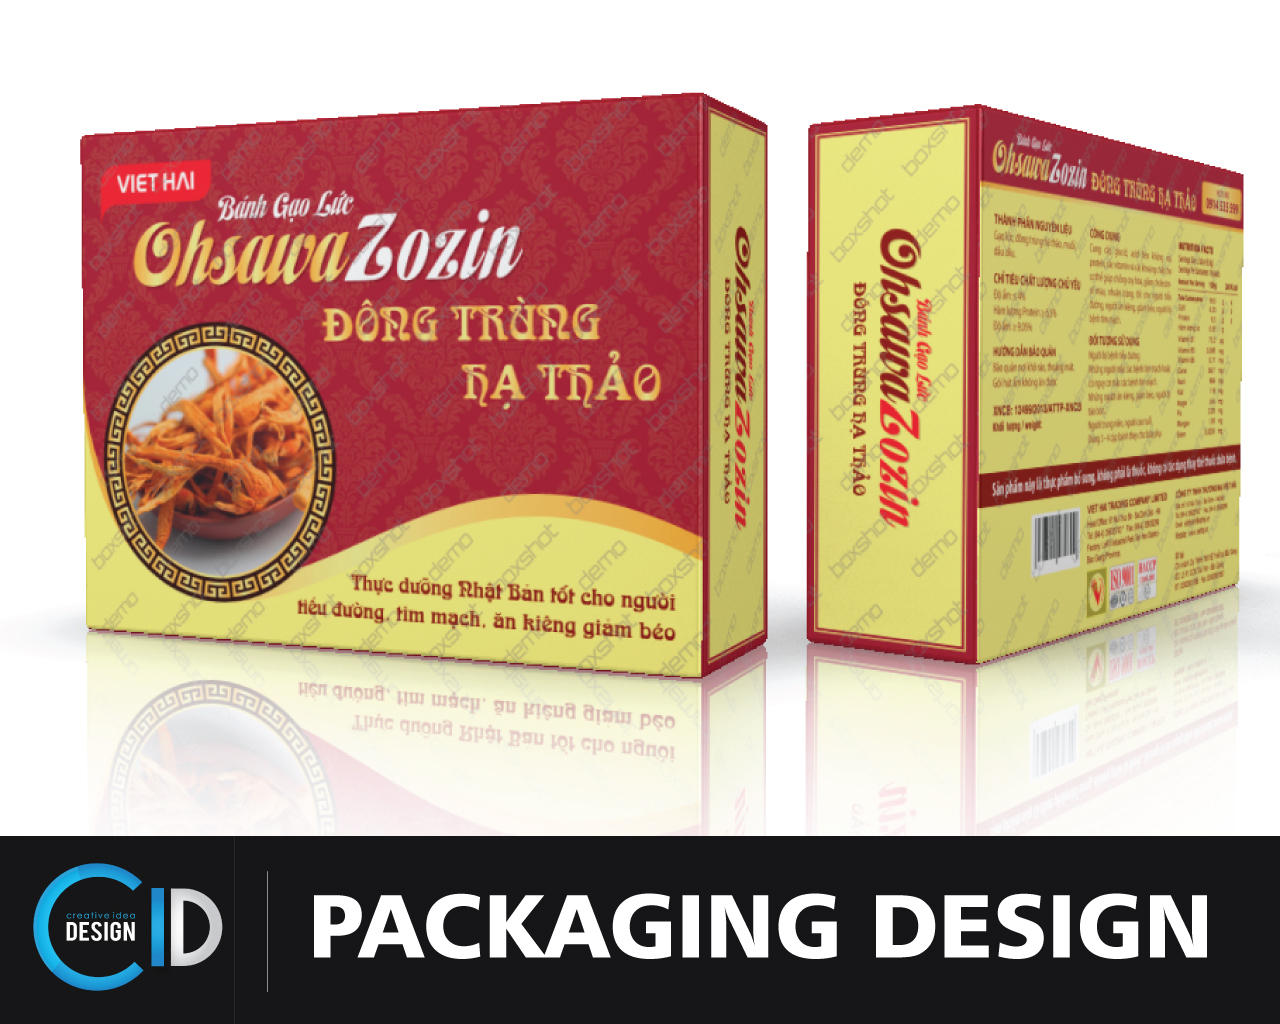 Professional Packaging Design by Thanhsugar - 95963